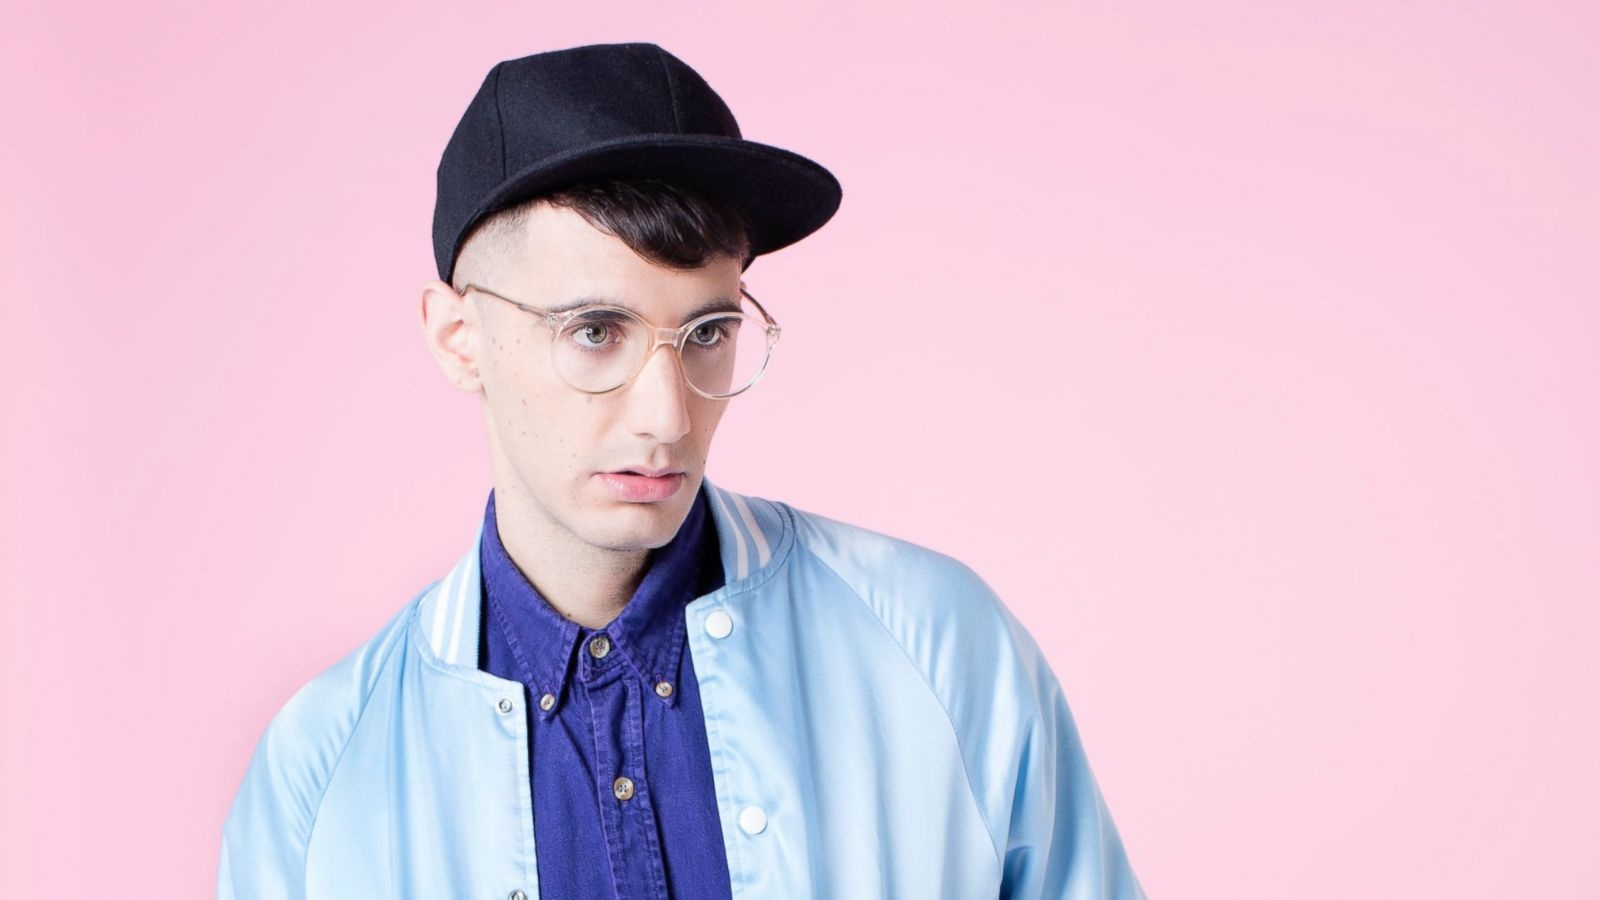 Alex Anwandter On Directing His First Film and the Differences Between Making Music and Making Movies